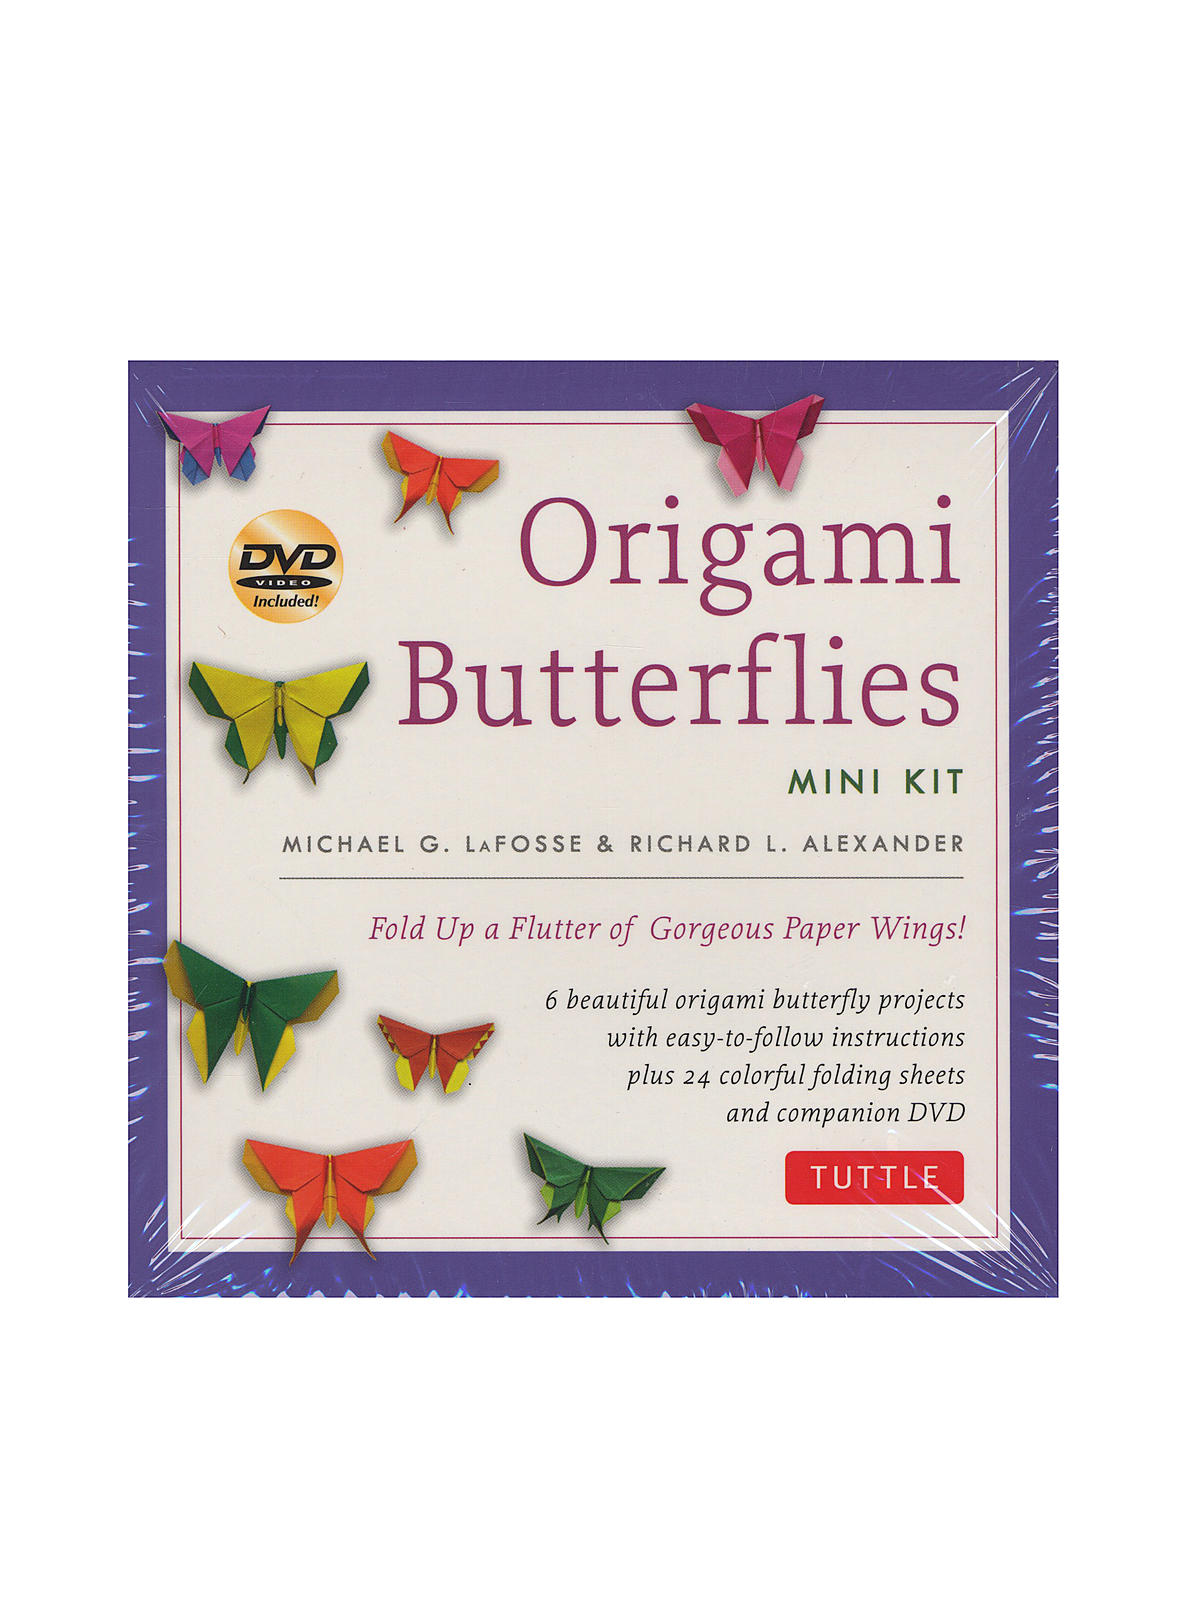 Origami Butterflies Mini Kit with DVD